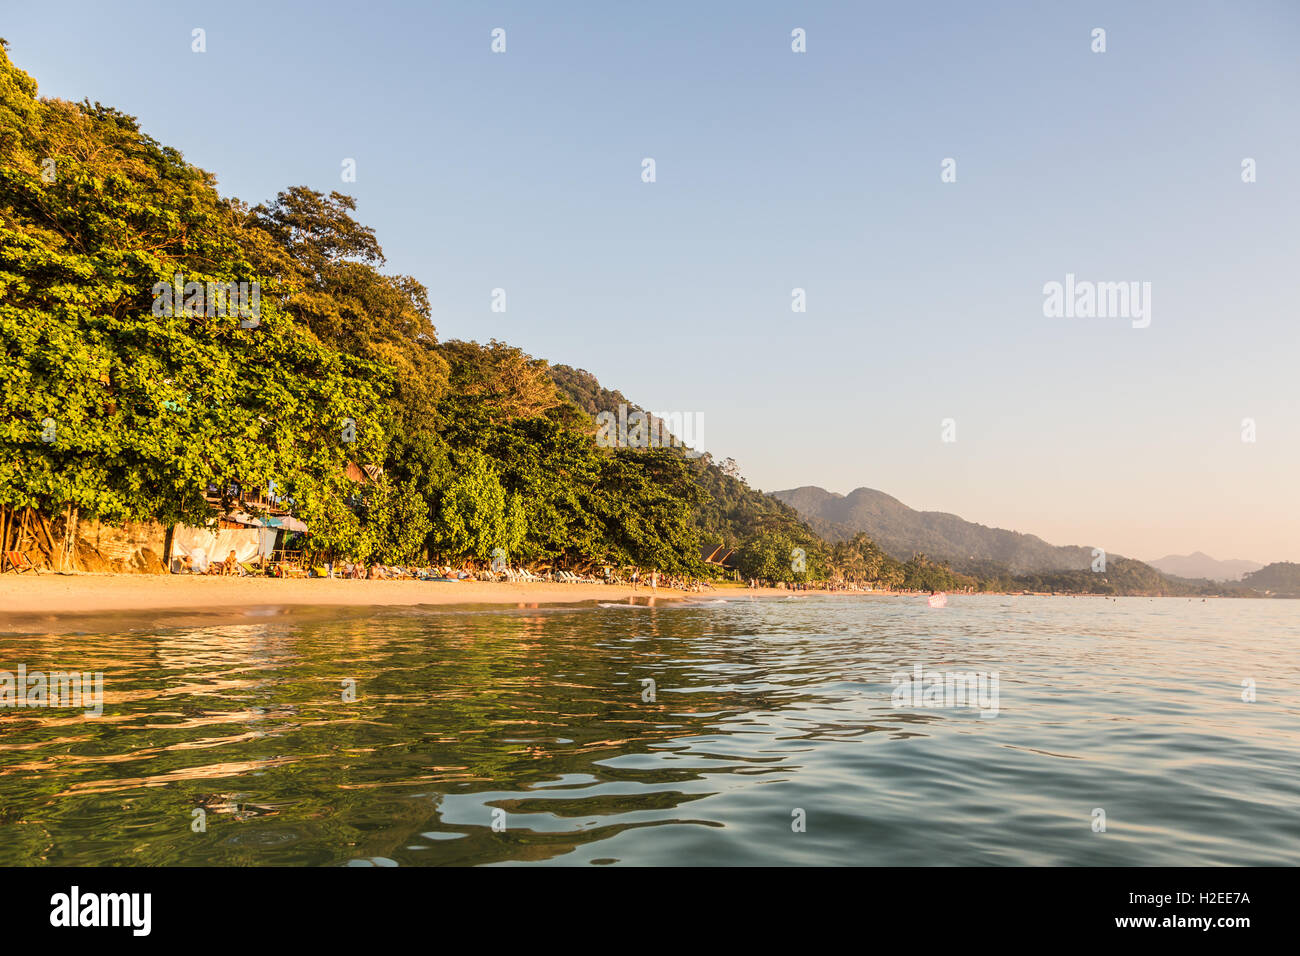 Sunset over white sand beach in Ko Chang, Thailand. This is  a popular island in the gulf of Thailand close to cambodia. - Stock Image